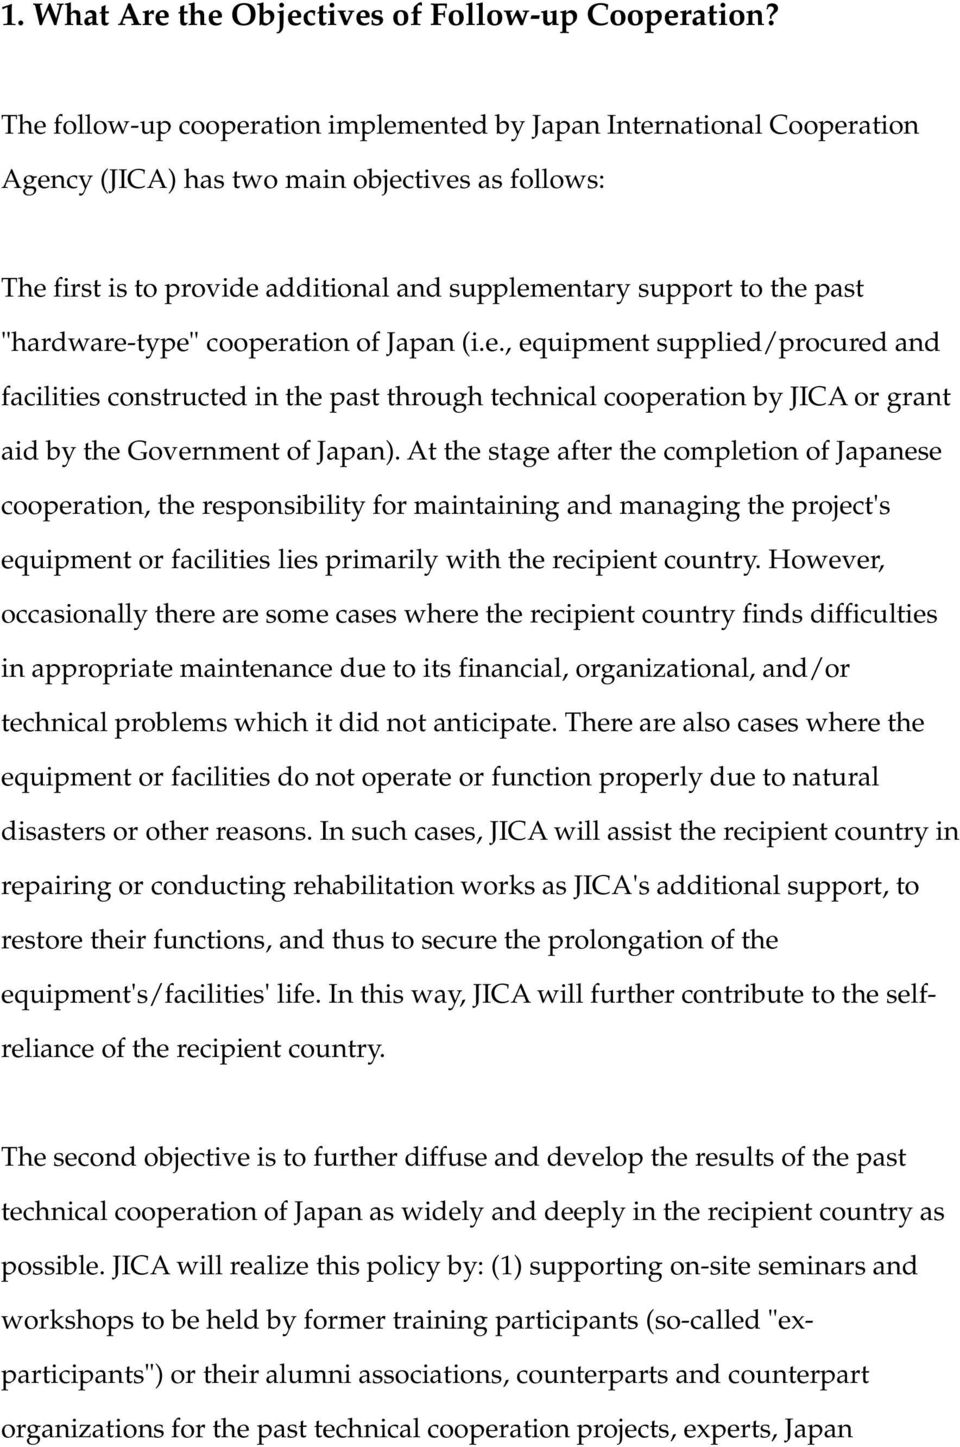 """hardware-type"" cooperation of Japan (i.e., equipment supplied/procured and facilities constructed in the past through technical cooperation by JICA or grant aid by the Government of Japan)."